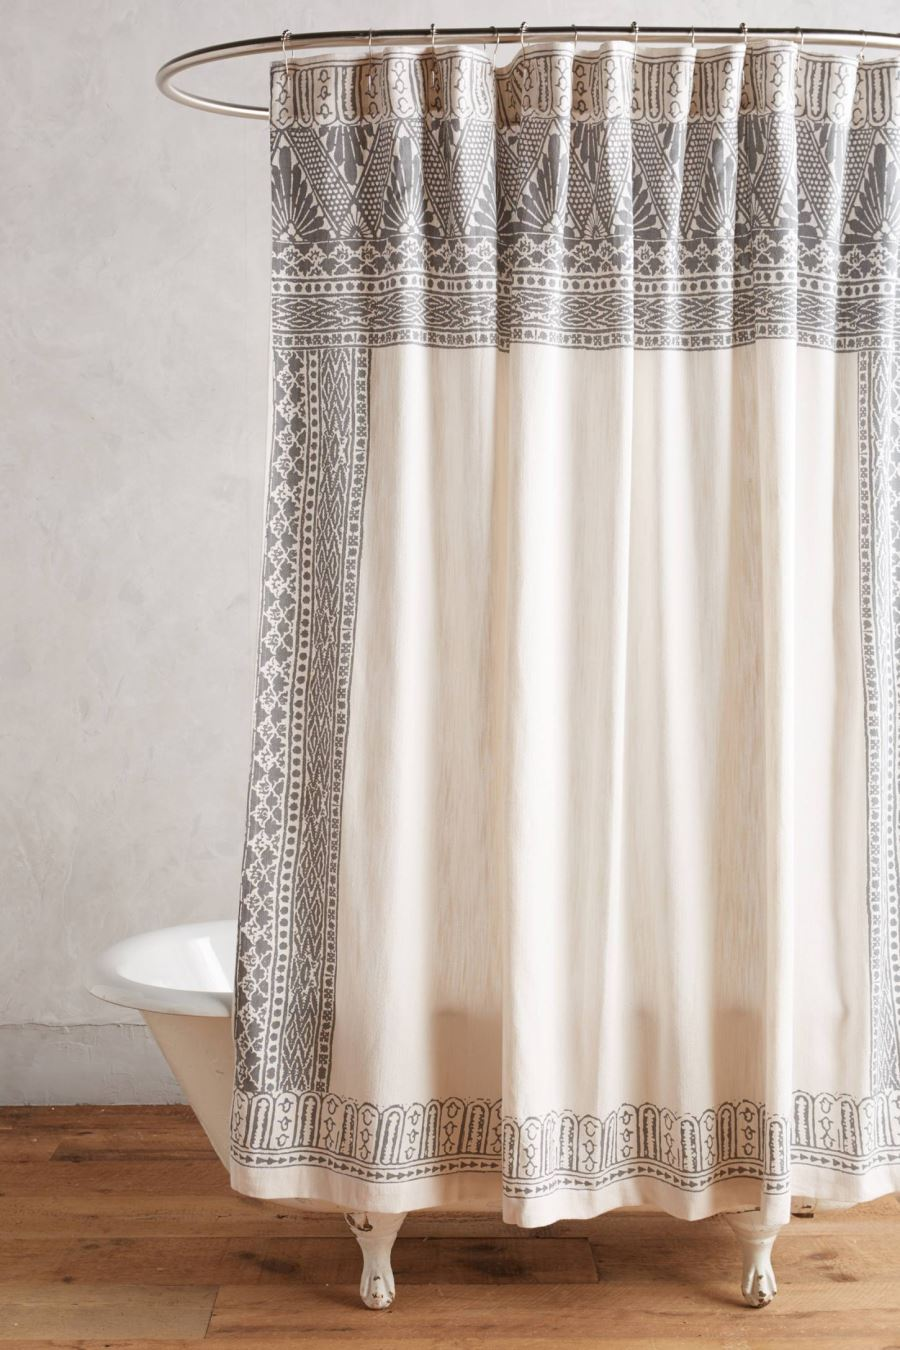 View In Gallery Anthropologie Shower Curtain With Art Noveau Flair